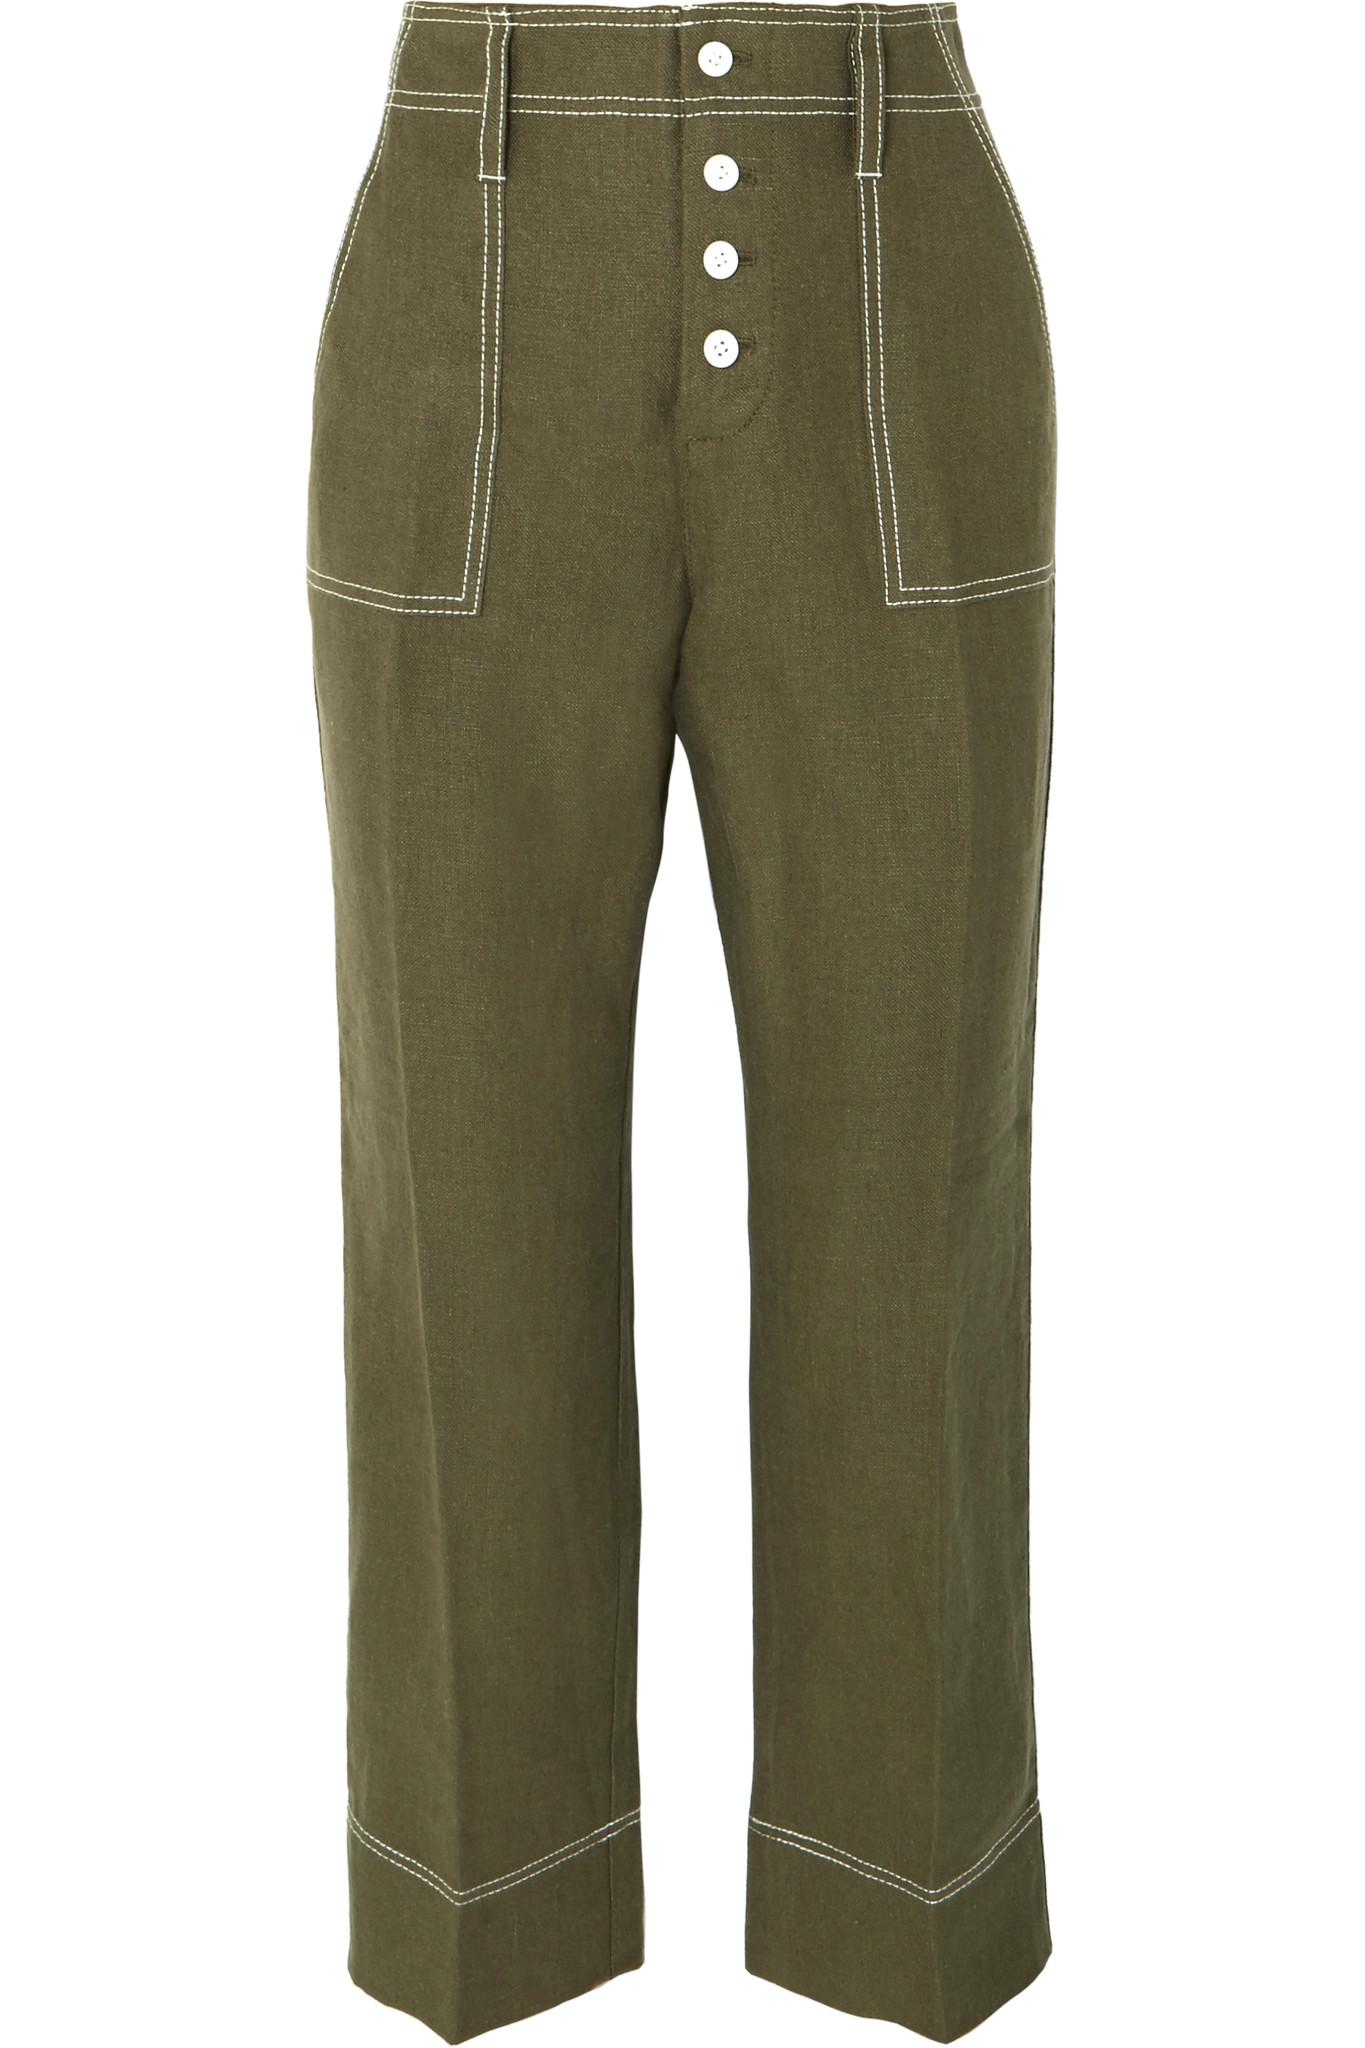 Foundry Cropped Linen Flared Pants - Green J.crew oUQcoksKVE